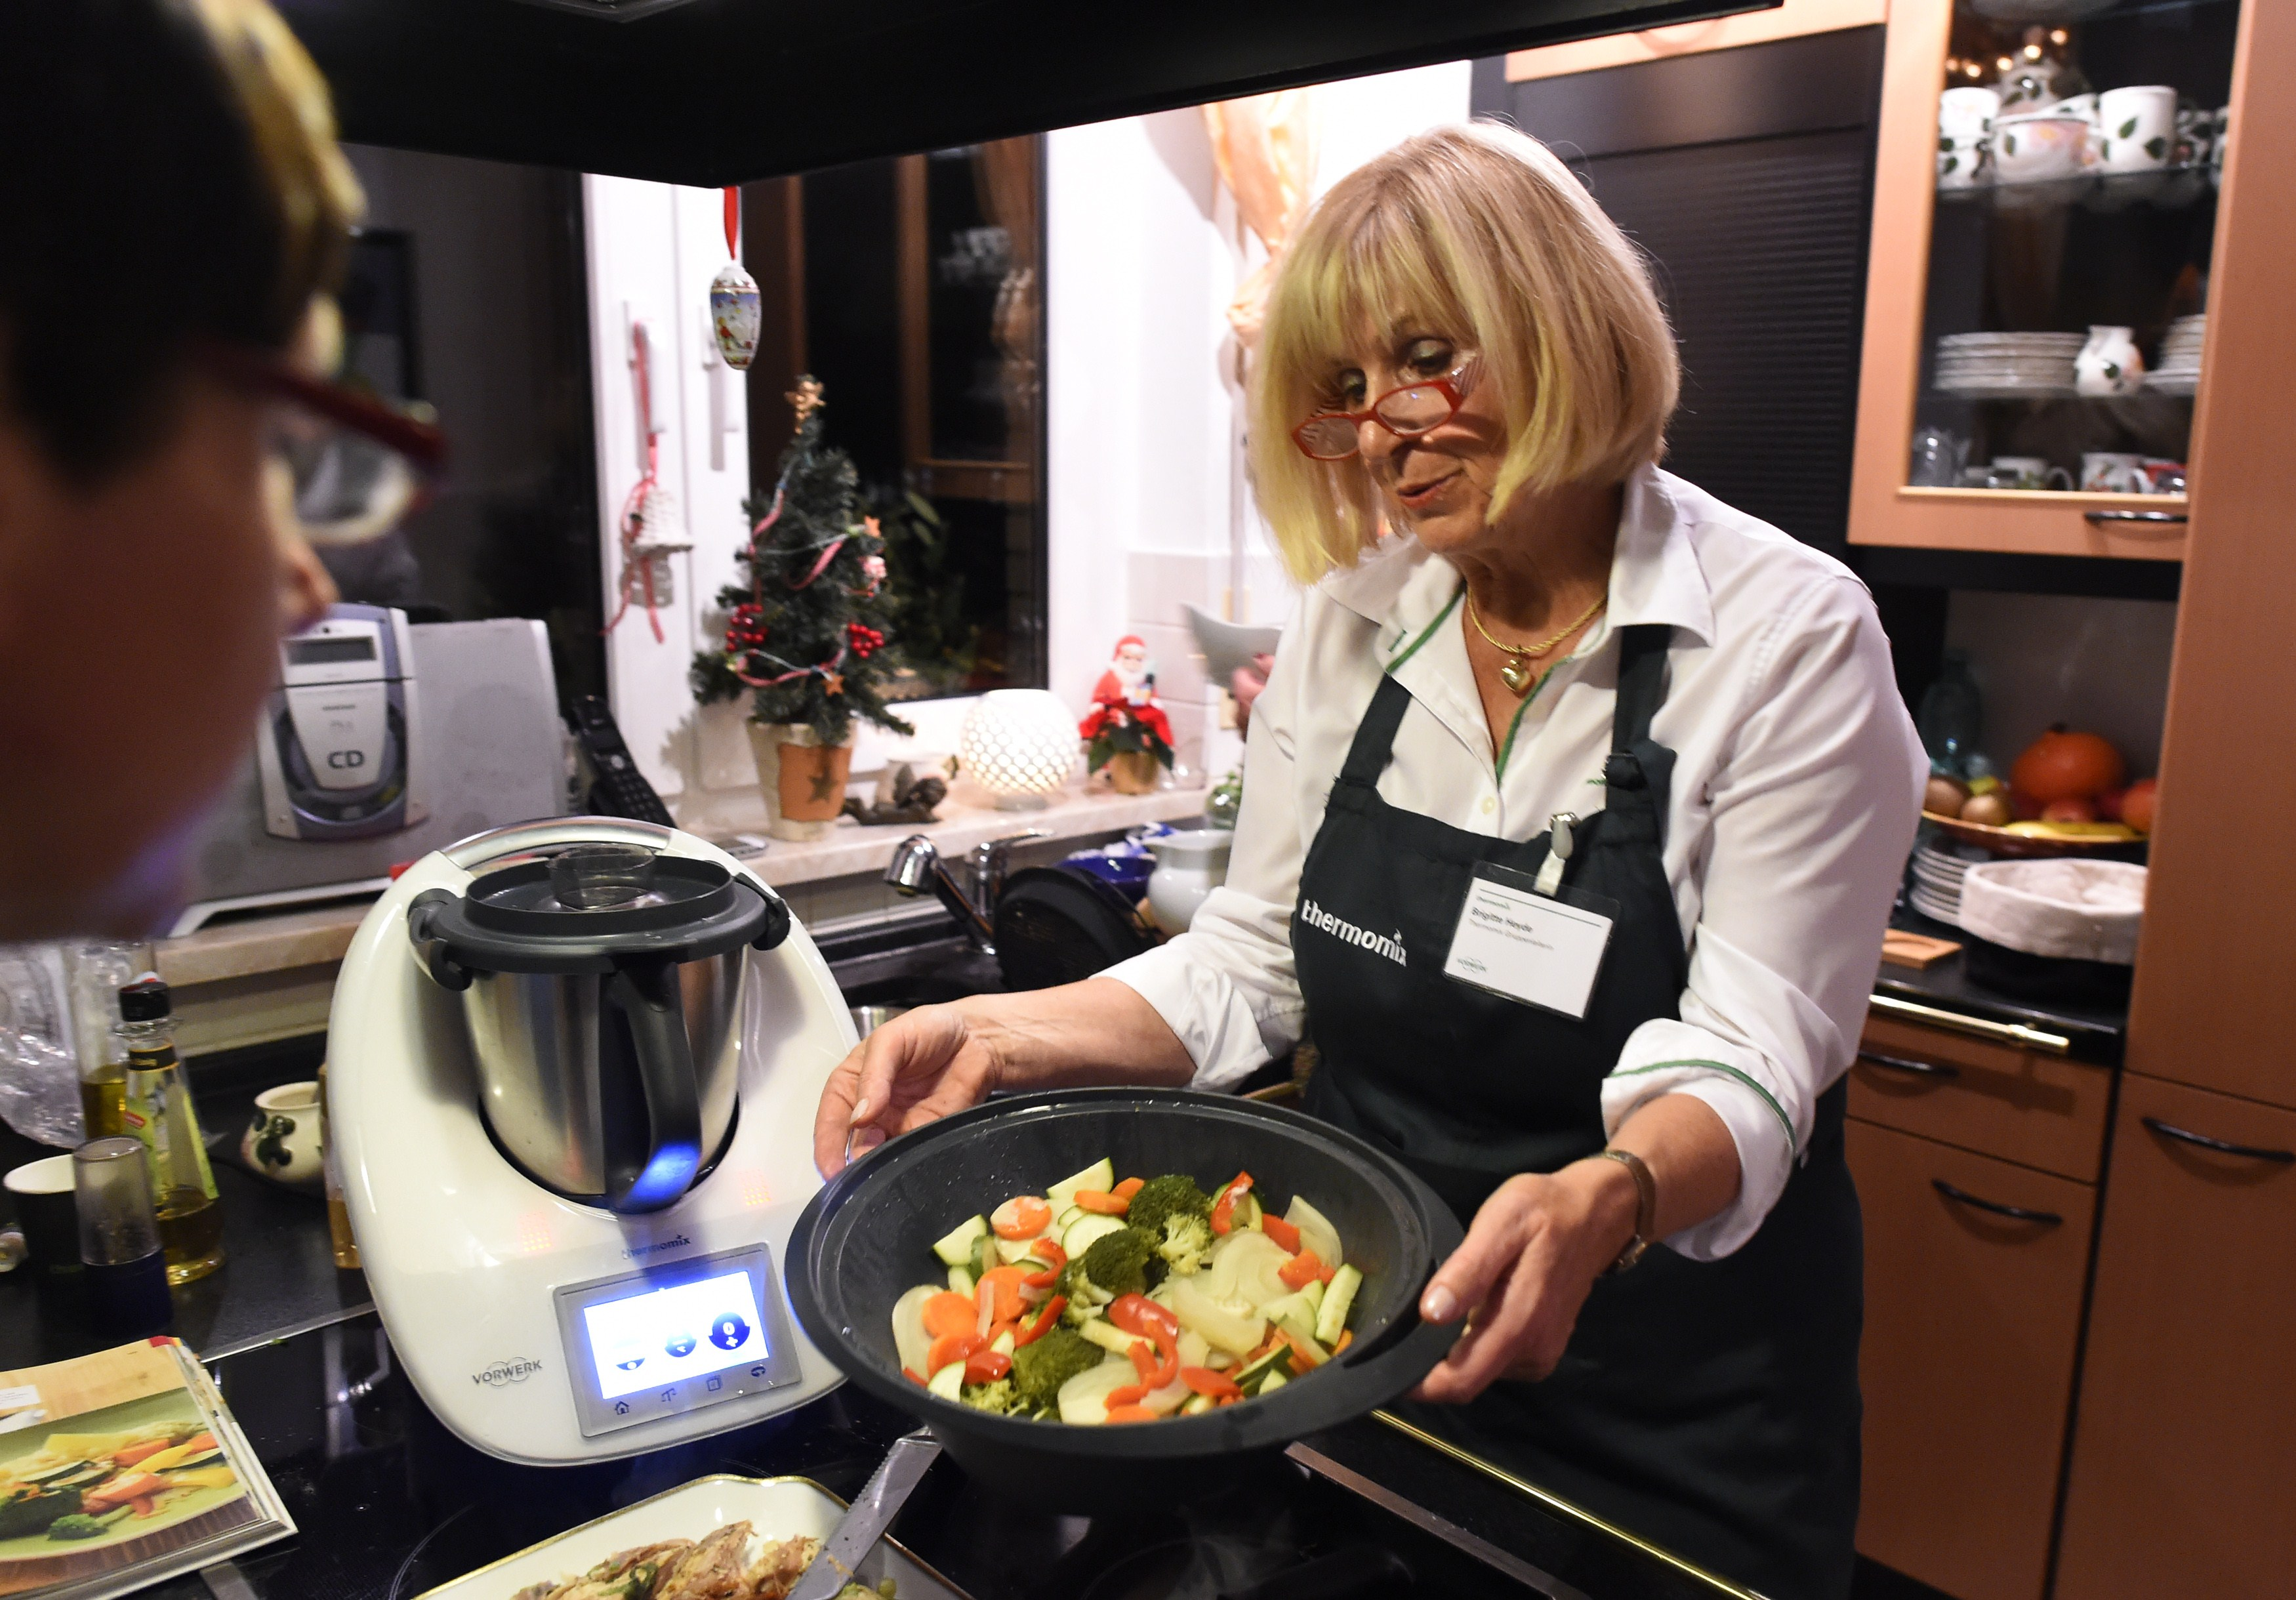 Thermomix  Vorwerk s  1 450 kitchen appliance  is coming to the US     AFP Getty Images Tobias Schwarz